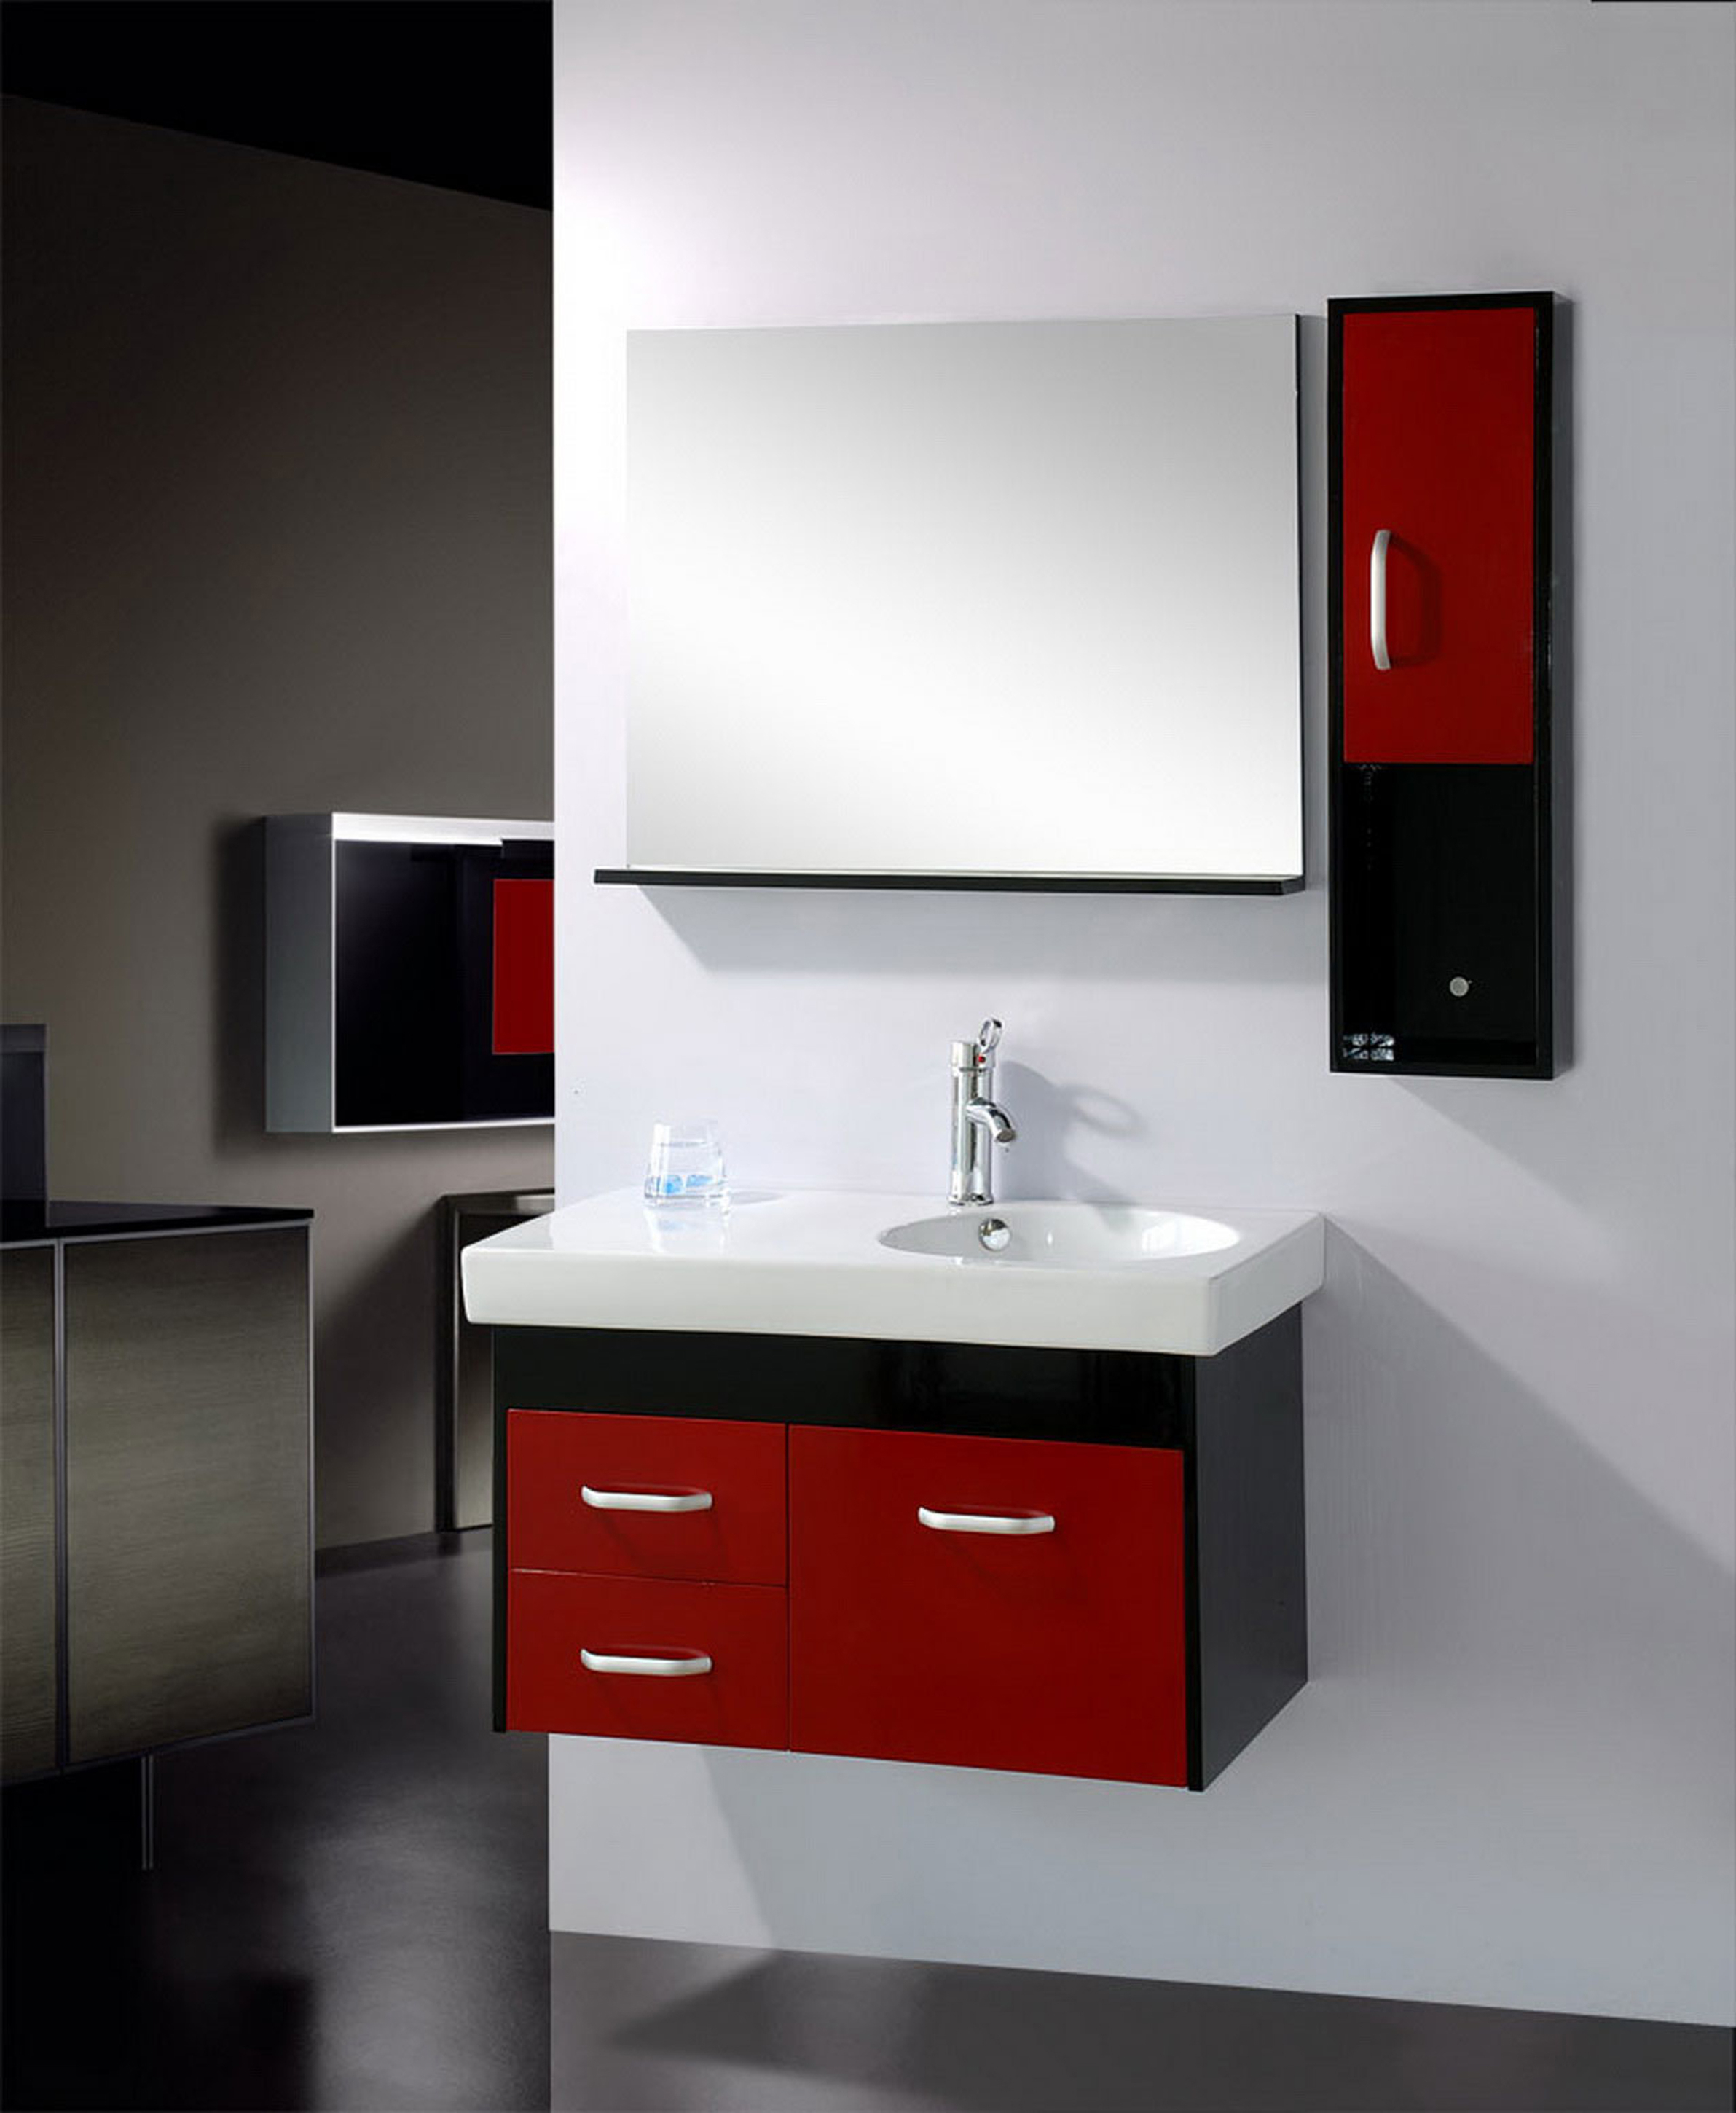 Luxury Mirror Design Bathroom Idea With Black Red Wall Cabinet With Silver Handle Luxury Mirror Design Bathroom Ideas (Image 97 of 123)